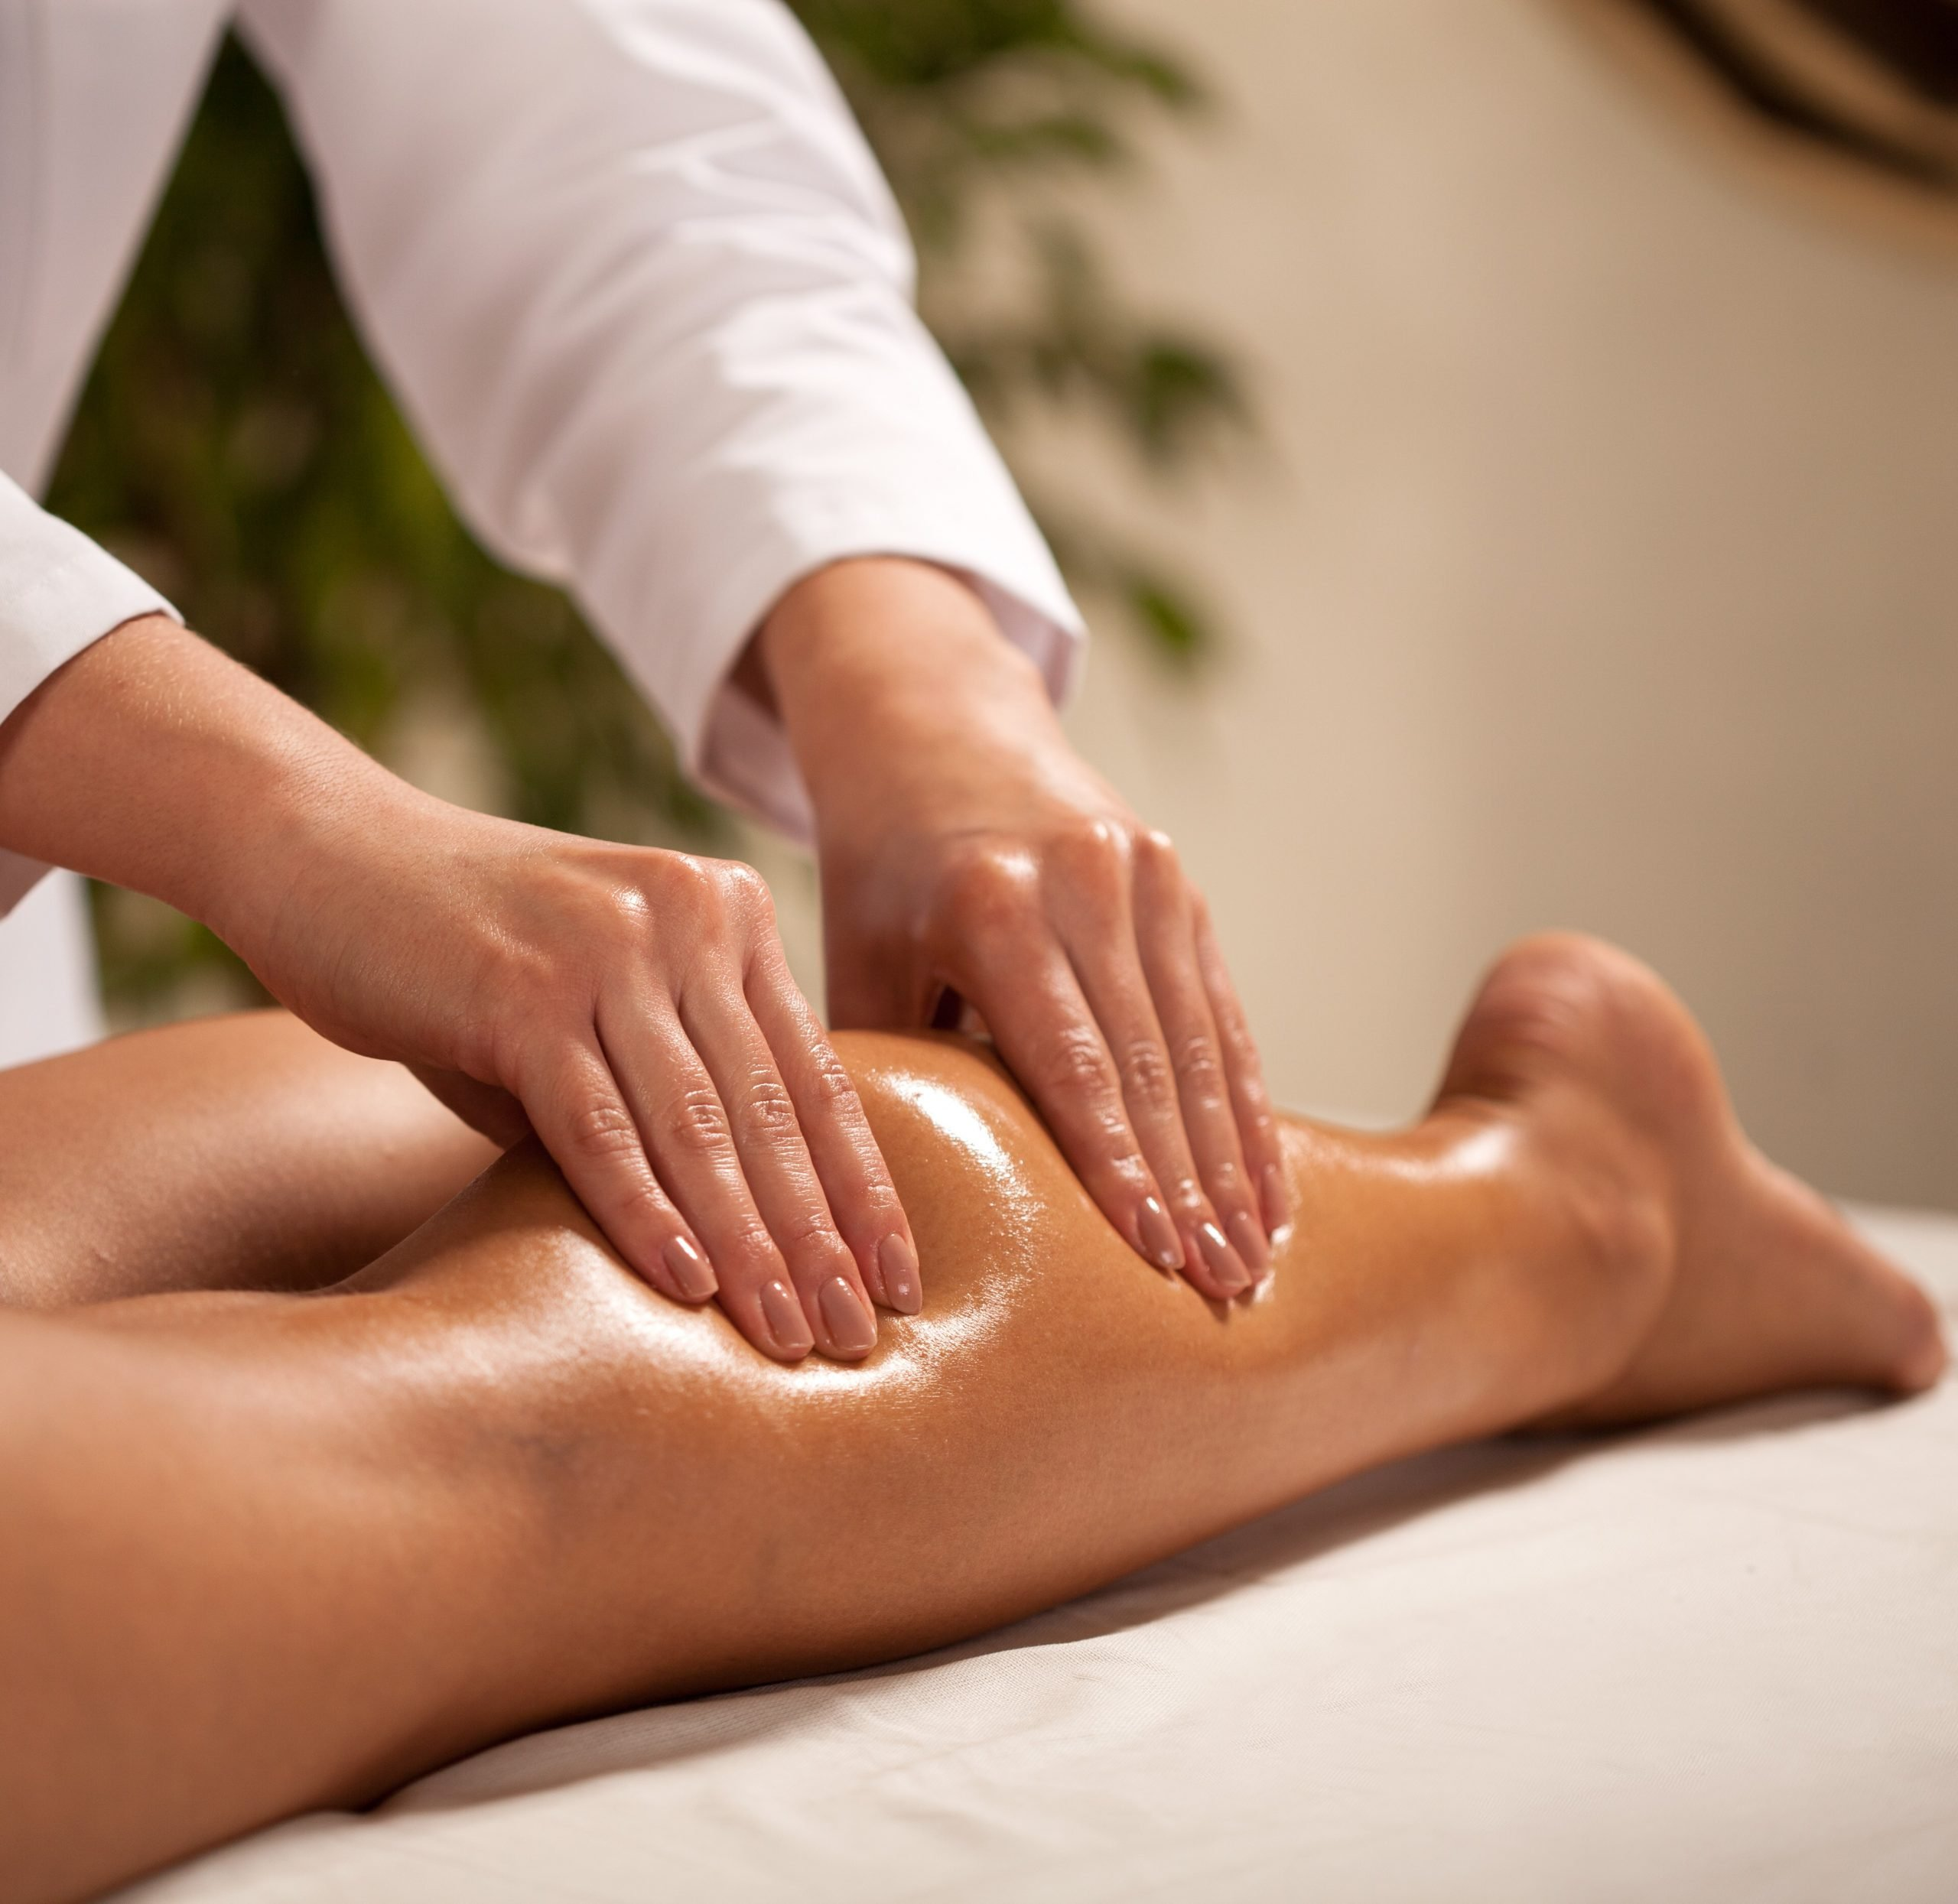 Sports Massage Can help improve injured muscles, prevent new injuries, and keep your body in a well-maintained shape. We come to your home with massage table, linens, candles, music and oil.